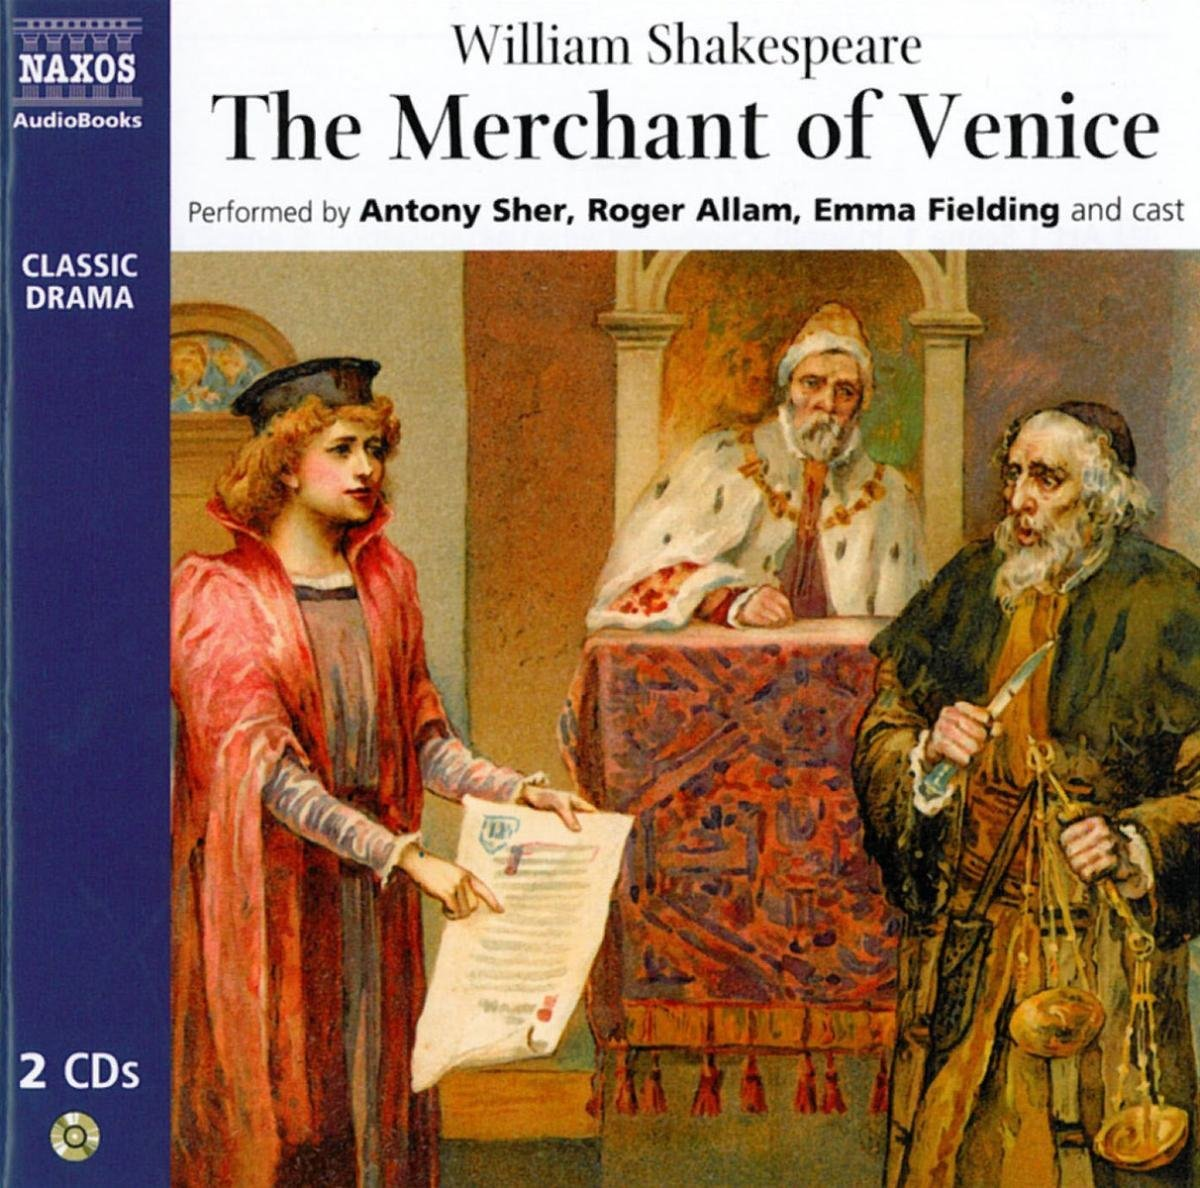 Buy The Merchant of Venice: 0 (Classic Drama) Book Online at Low Prices in  India | The Merchant of Venice: 0 (Classic Drama) Reviews & Ratings -  Amazon.in